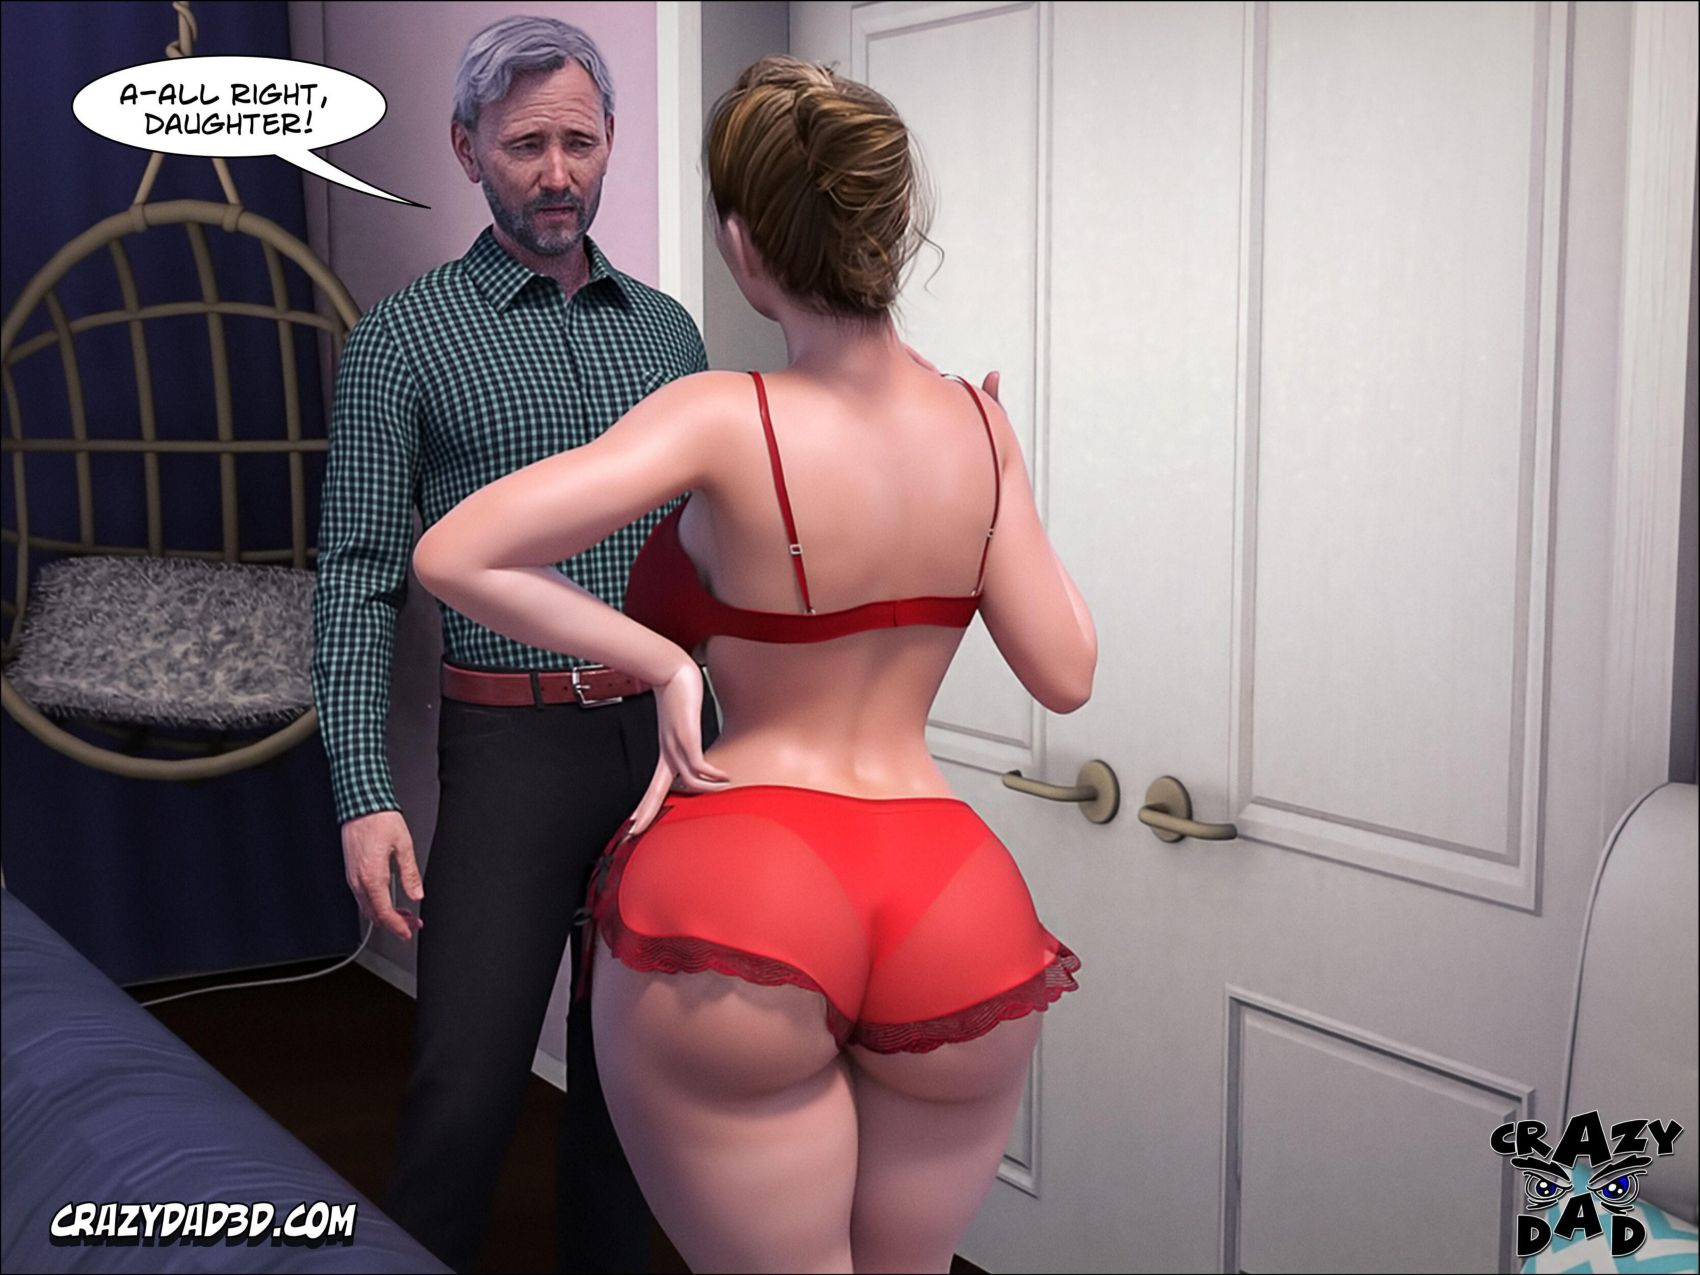 Father-in-Law at Home 7 [Crazy Dad]